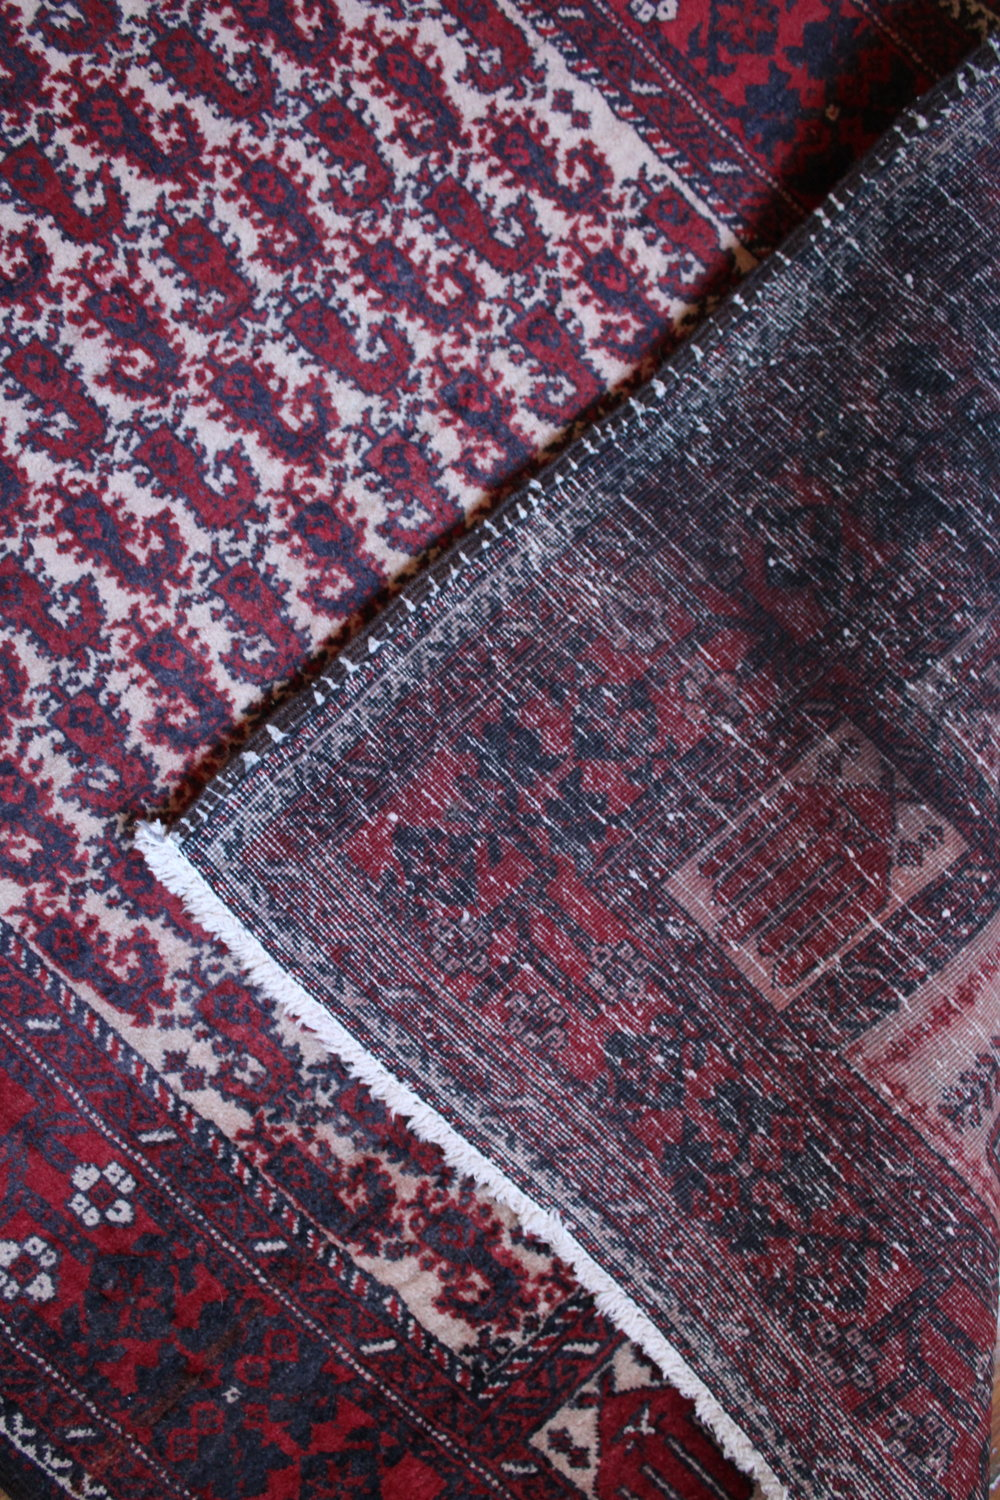 Handmade rug where you can see all of the knots and details of the work.